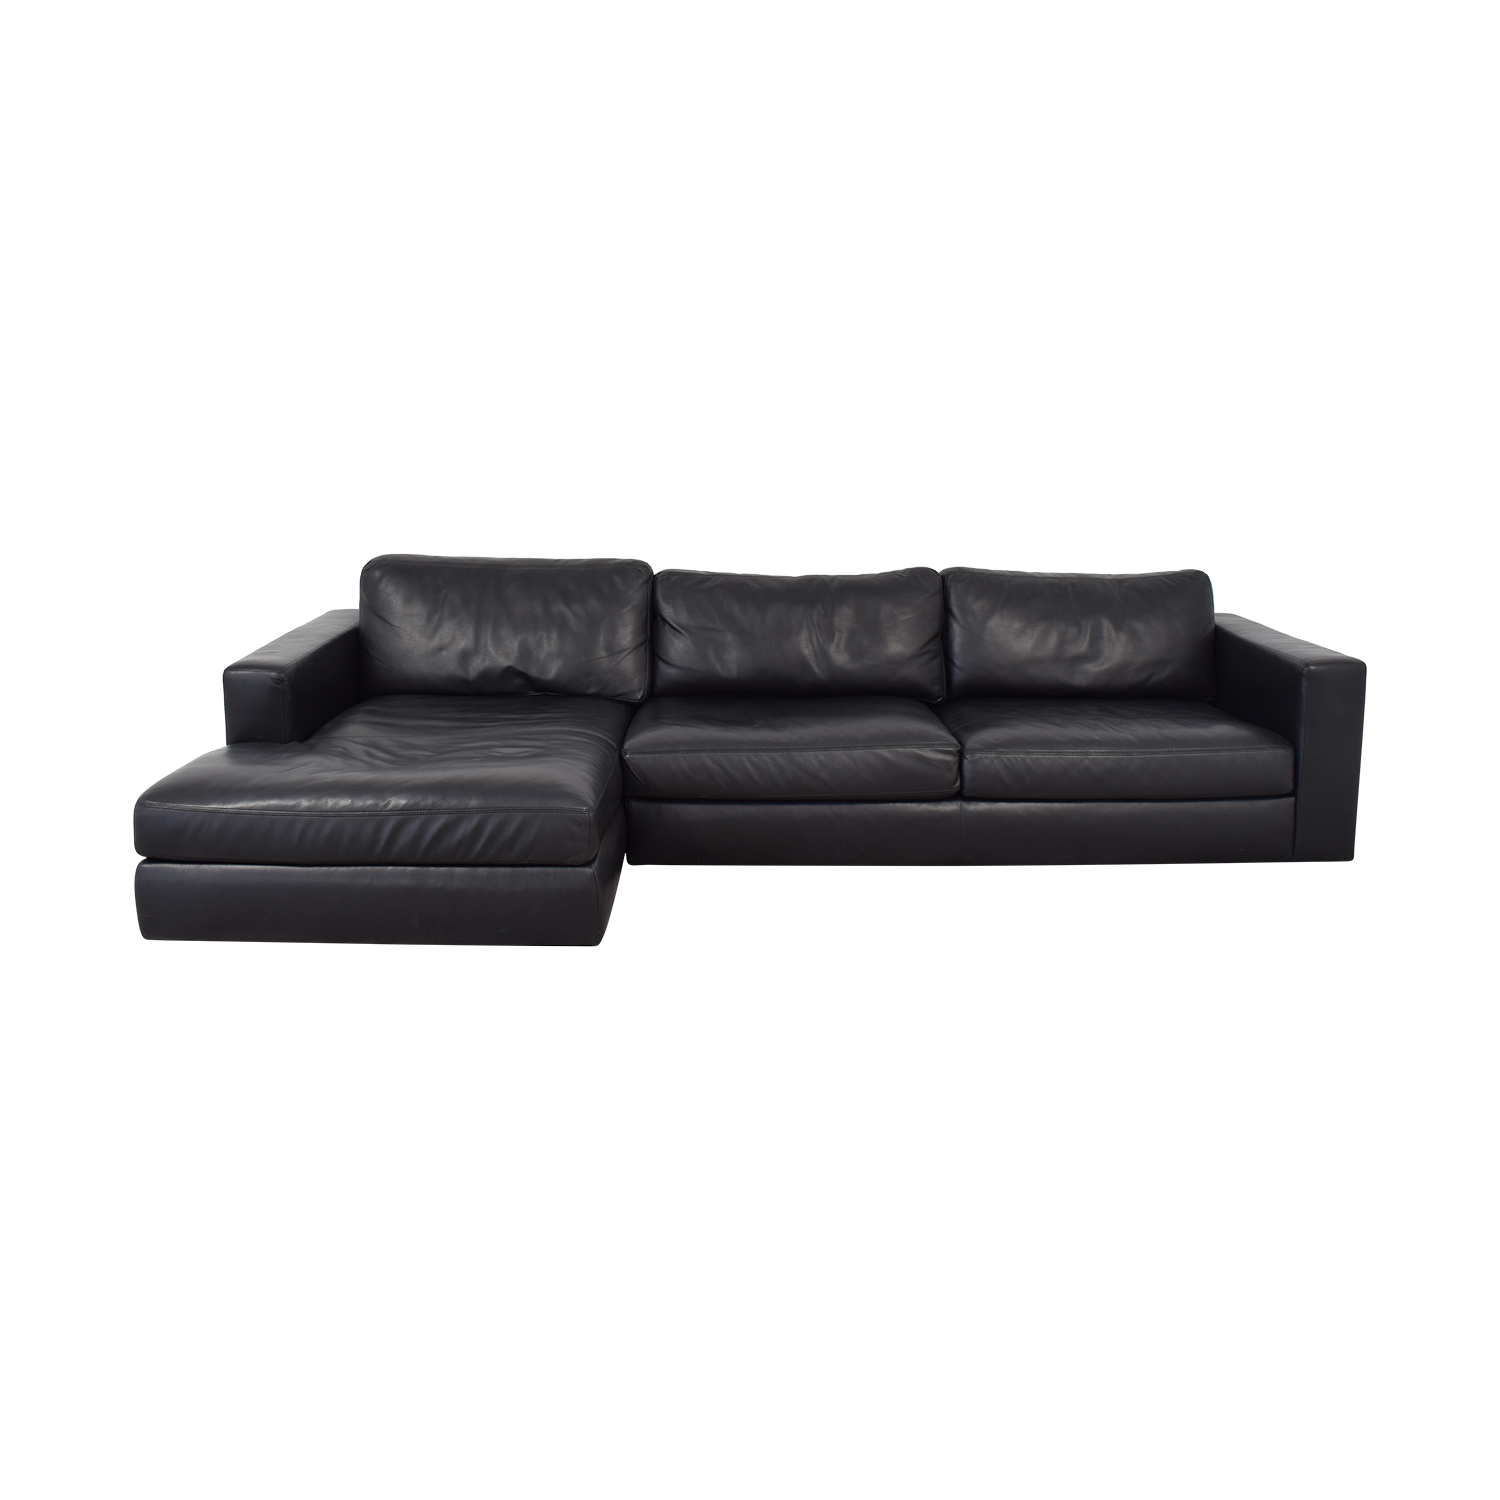 Design Within Reach Design Within Reach Reid Sectional Chaise on sale